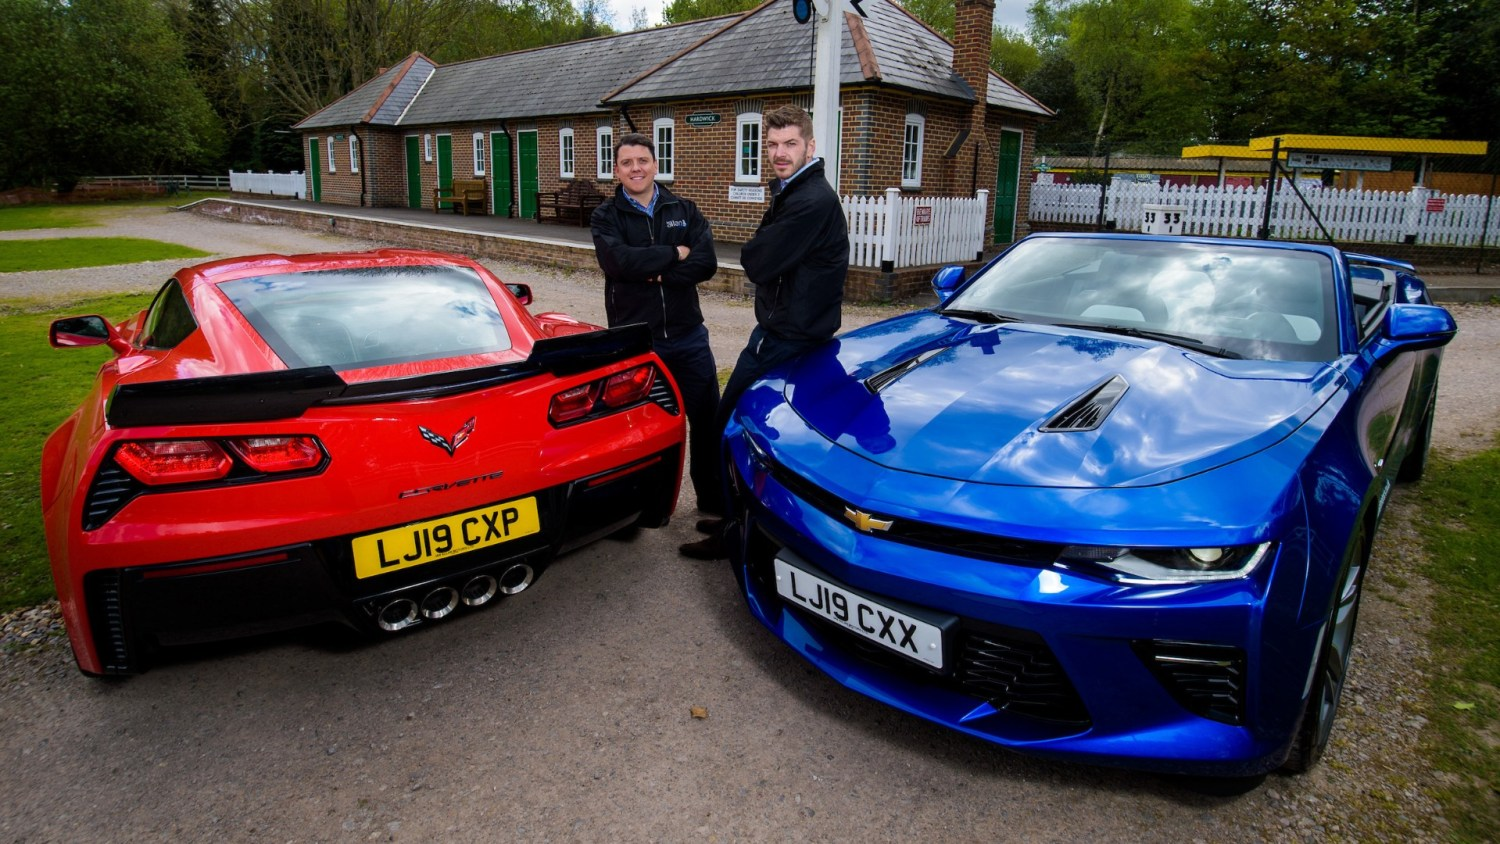 Last chance to buy a Corvette or a Camaro in the UK